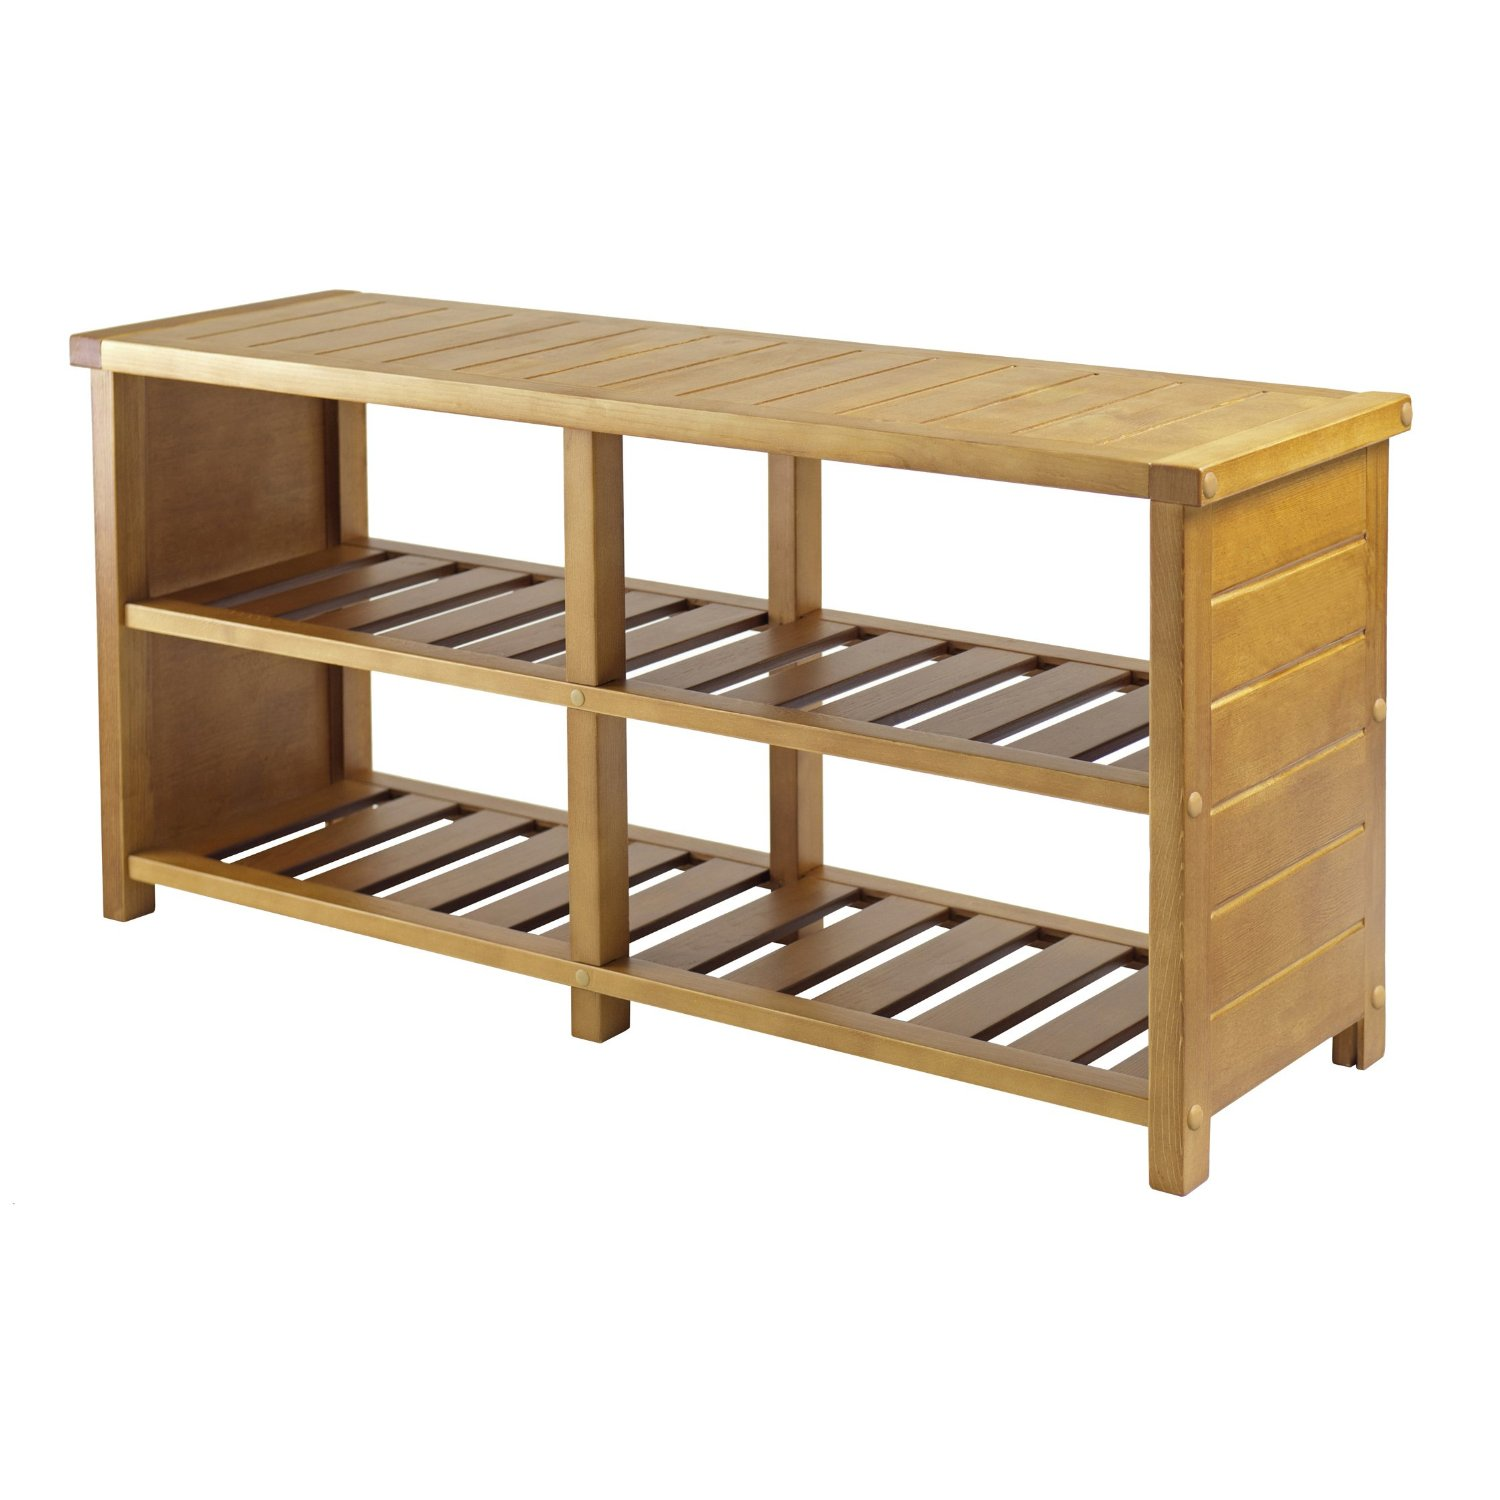 Furniture Outdoor Furniture Storage Entry Bench Shoe